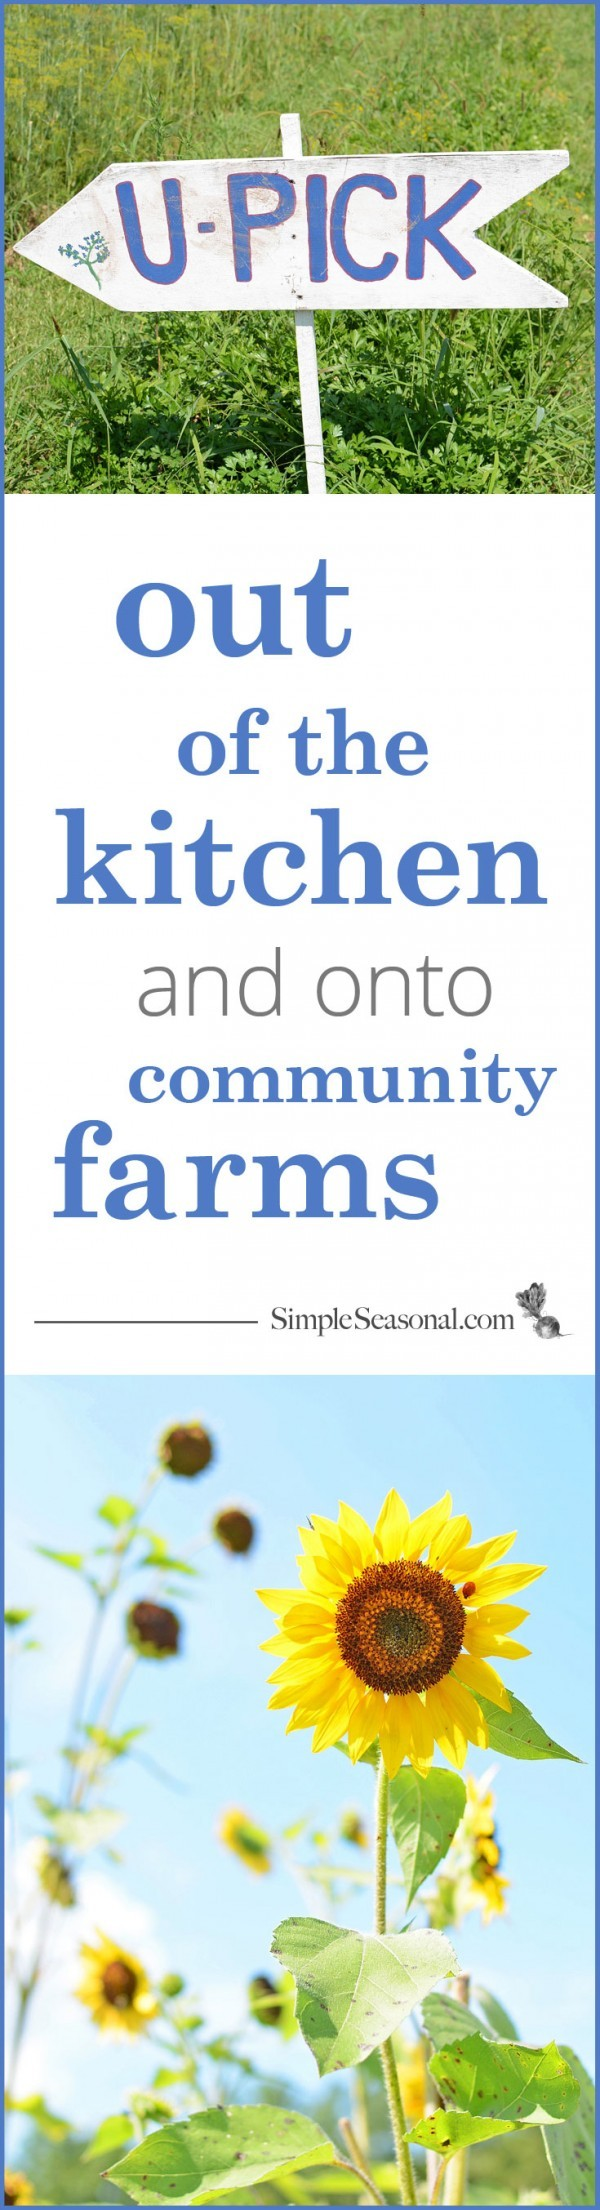 out of the kitchen and onto community farms